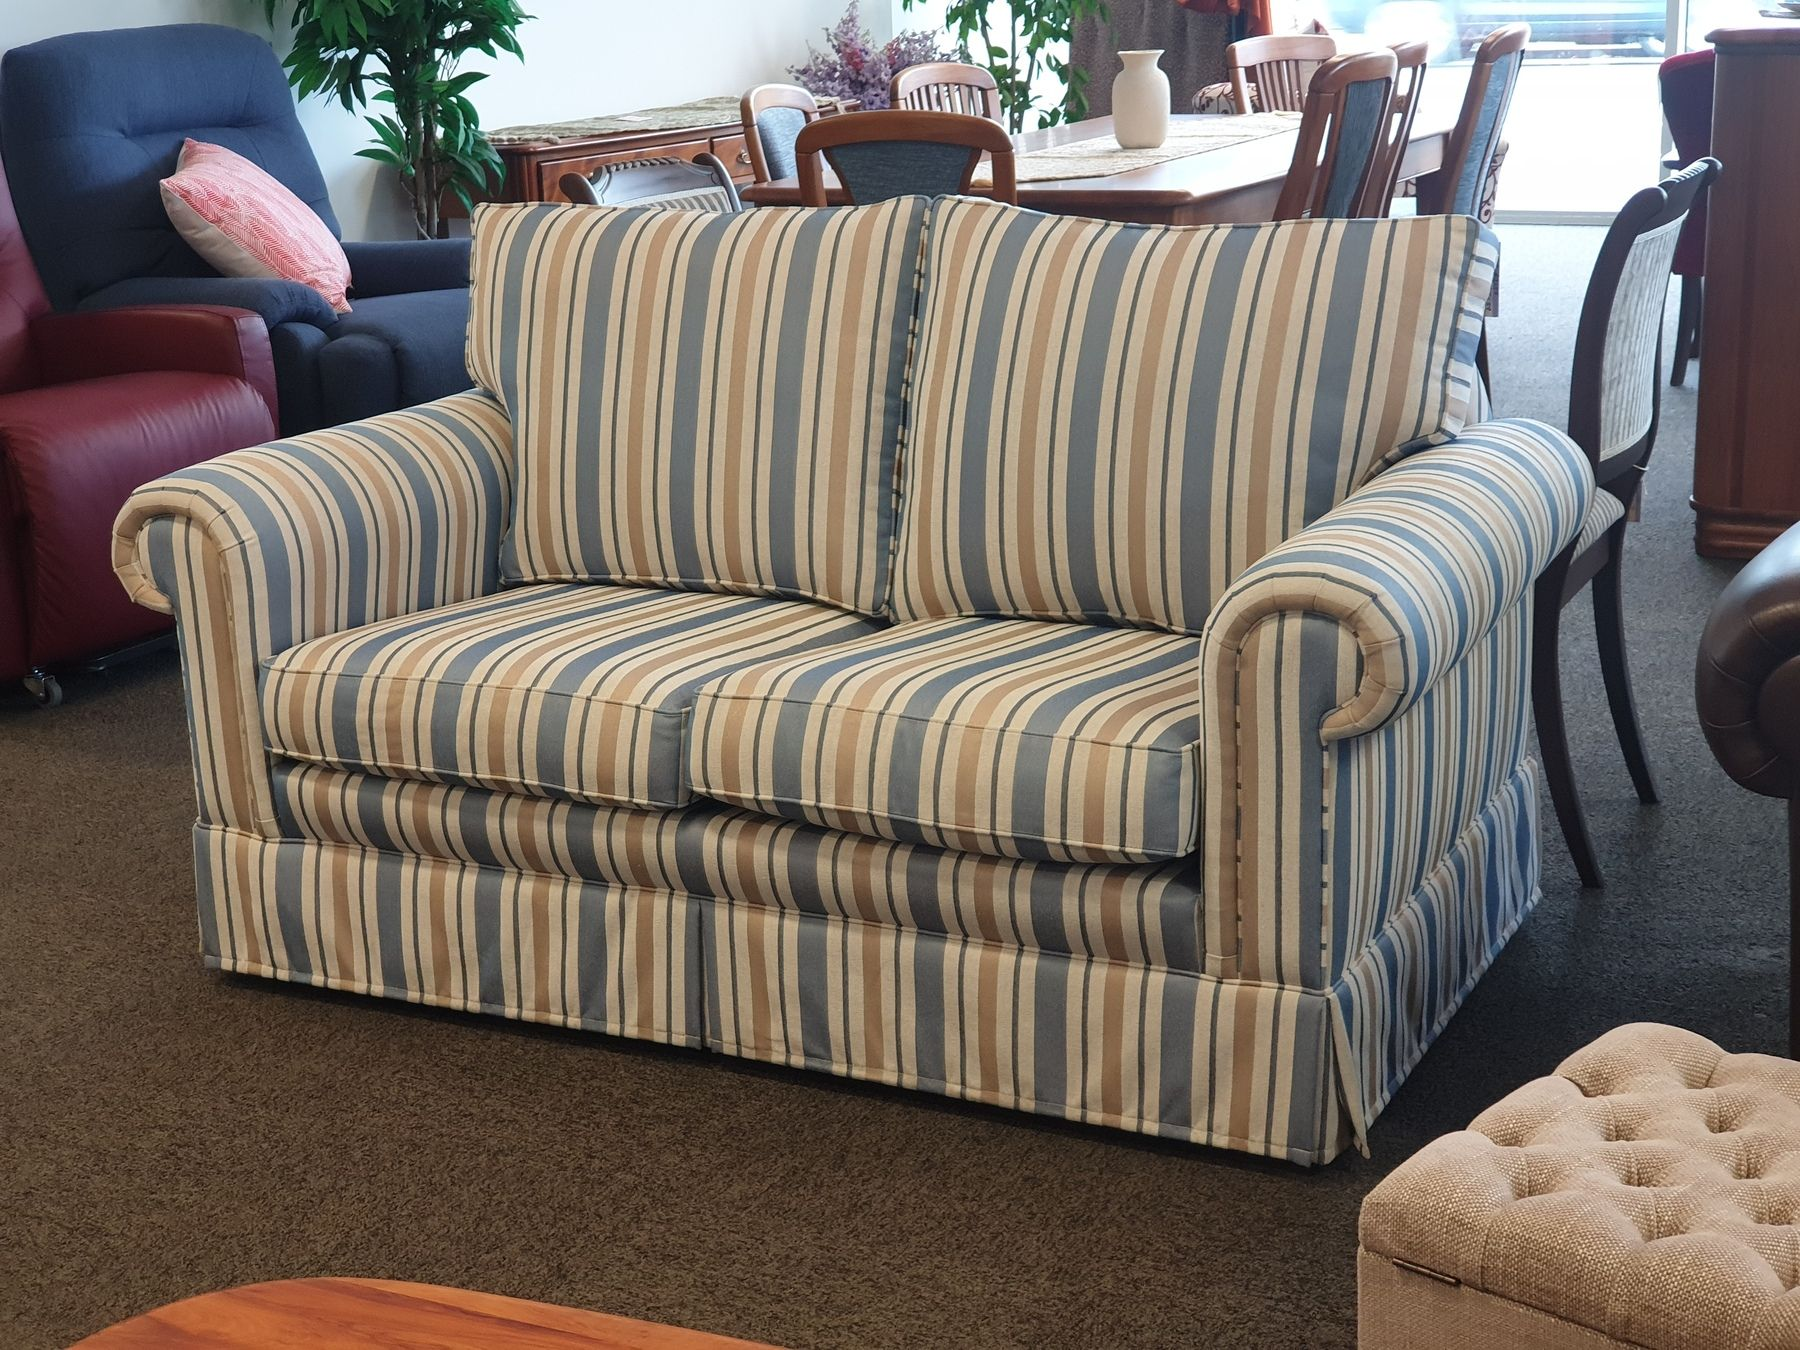 Pace furniture Whitehall couch